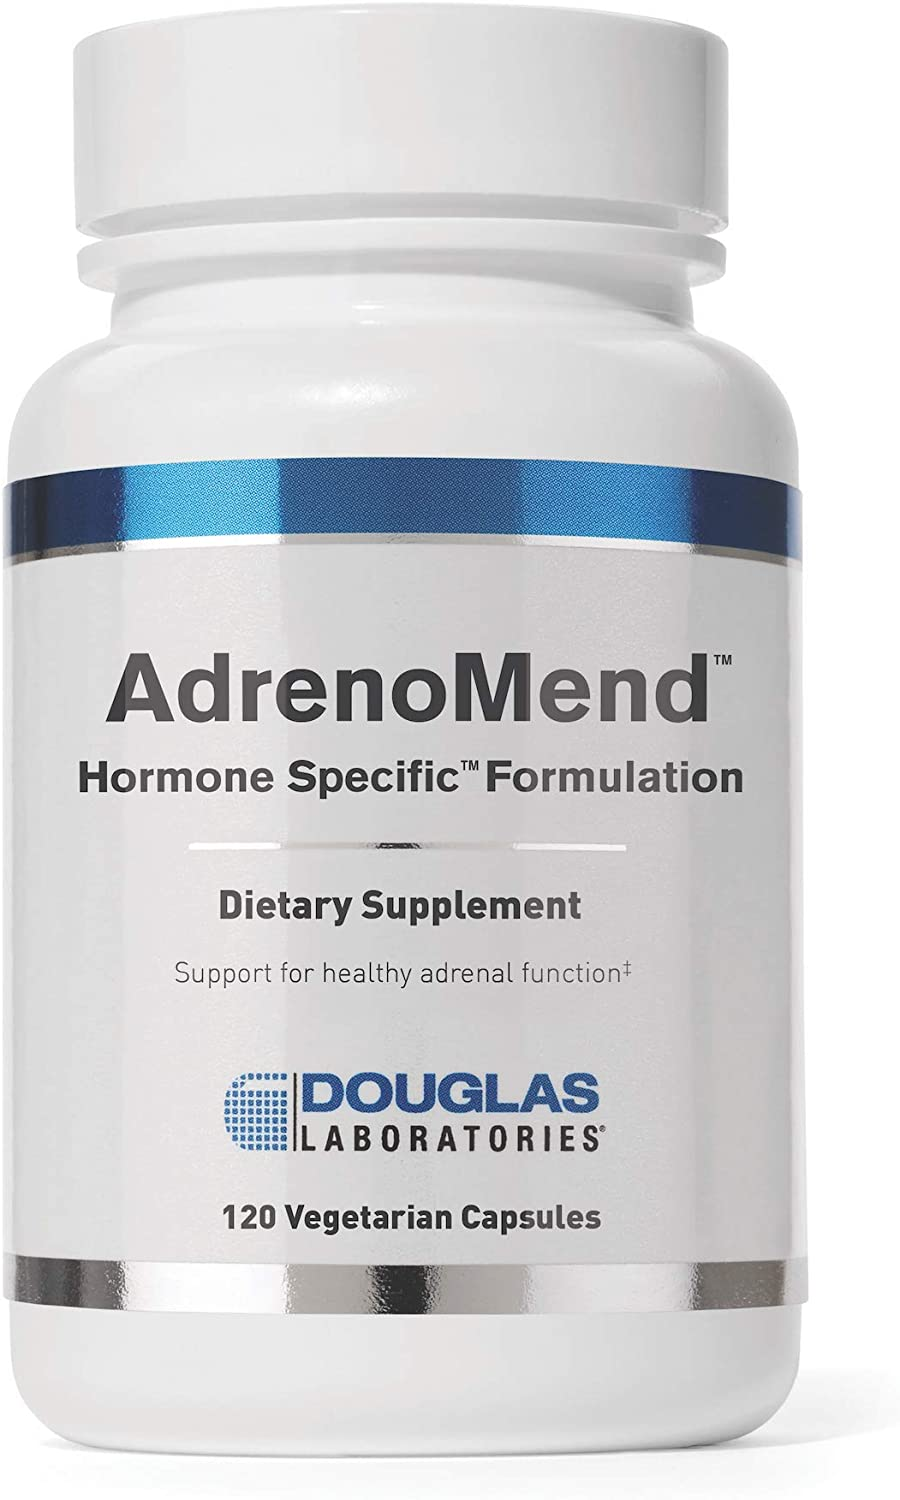 Douglas Laboratories - AdrenoMend - Ten Herbal Adaptogens to Support Adrenal Gland Function During Stress - 120 Capsules: Health & Personal Care